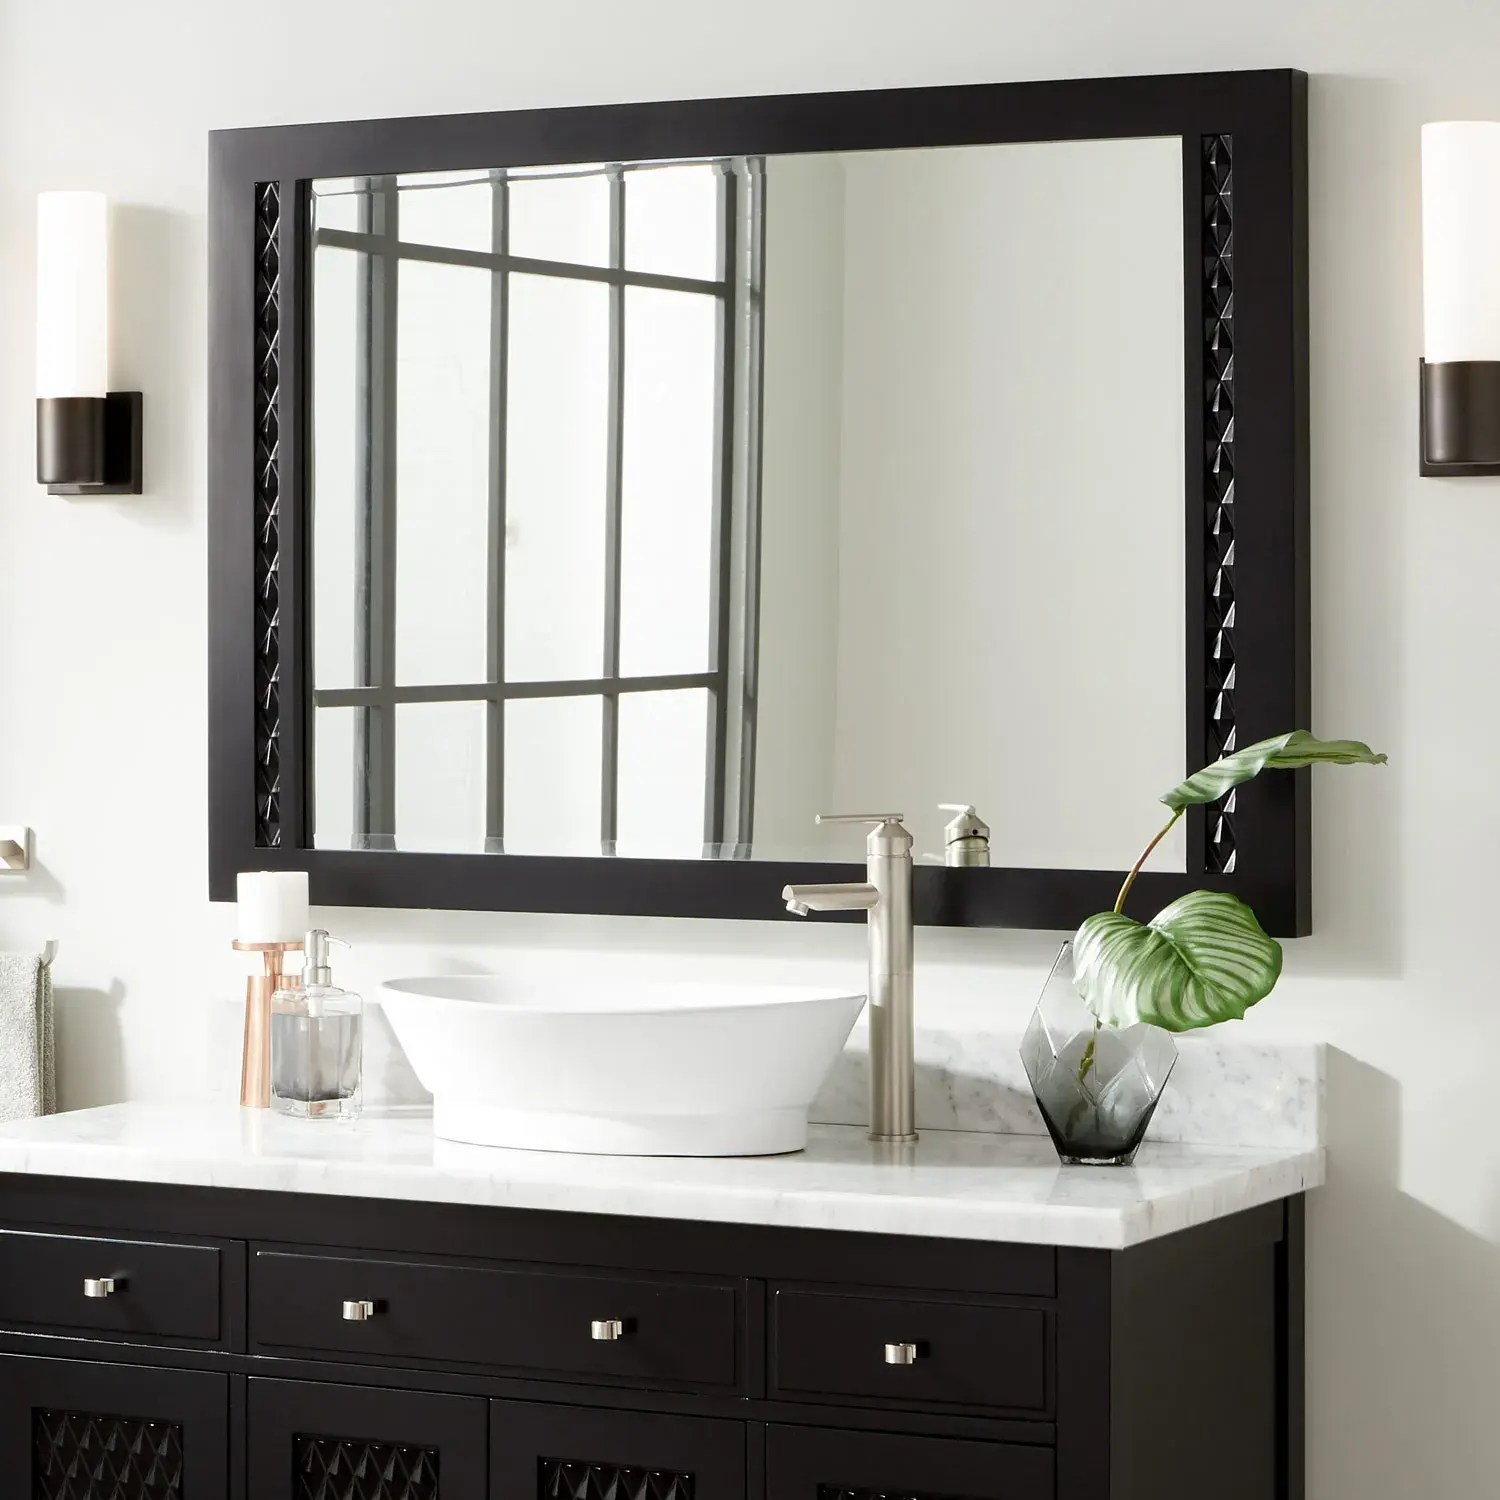 Thorton Mahogany Vanity Mirror Black Framed Mirrors Bathroom Mirrors Bathroom